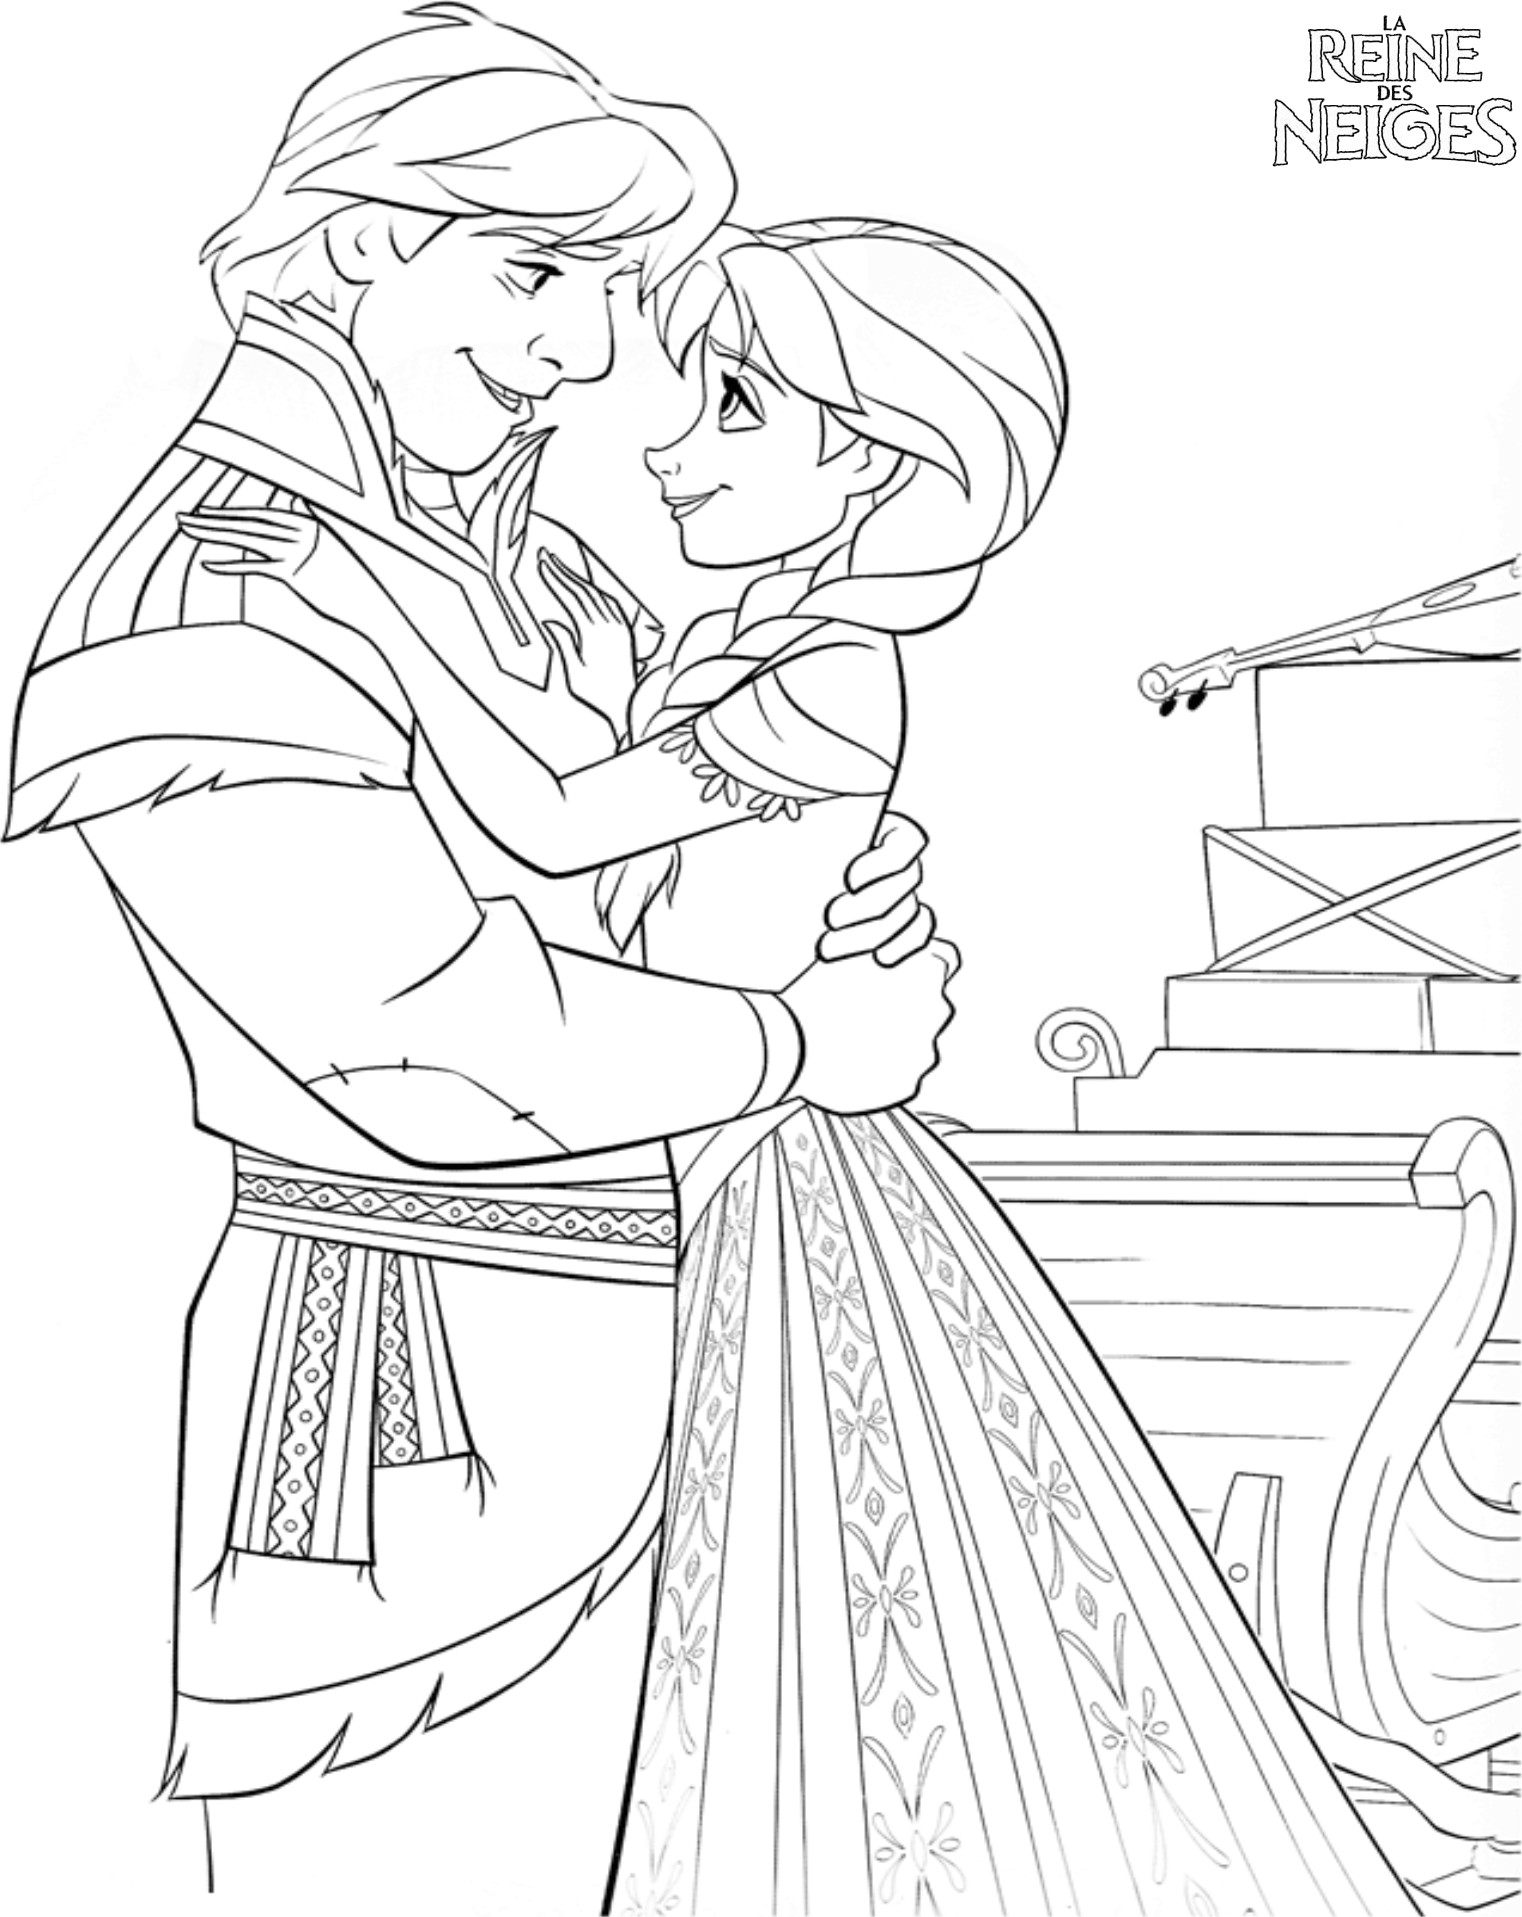 coloriage a imprimer kristoff et anna amoureux gratuit et colorier. Black Bedroom Furniture Sets. Home Design Ideas